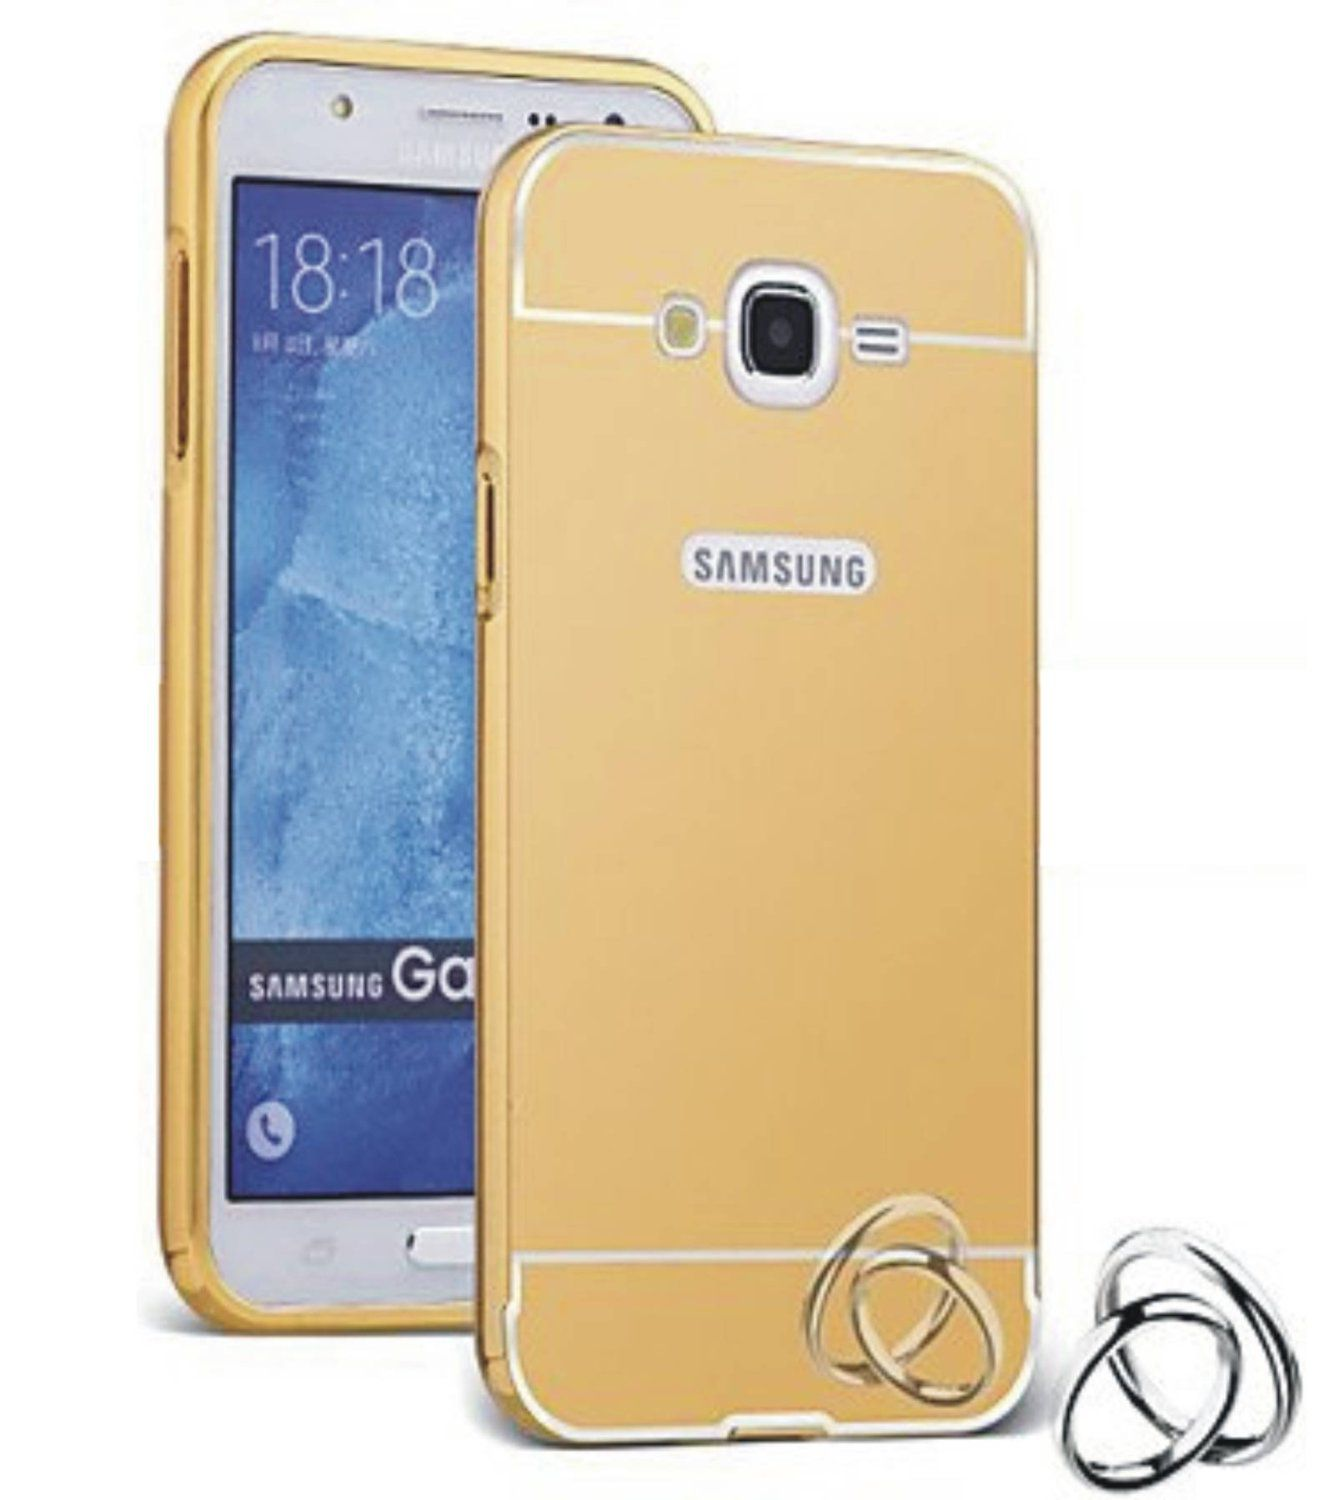 Style Crome Metal Bumper + Acrylic Mirror Back Cover Case For Samsung NOTE 2 Gold + Flexible Portable Thumb OK Stand